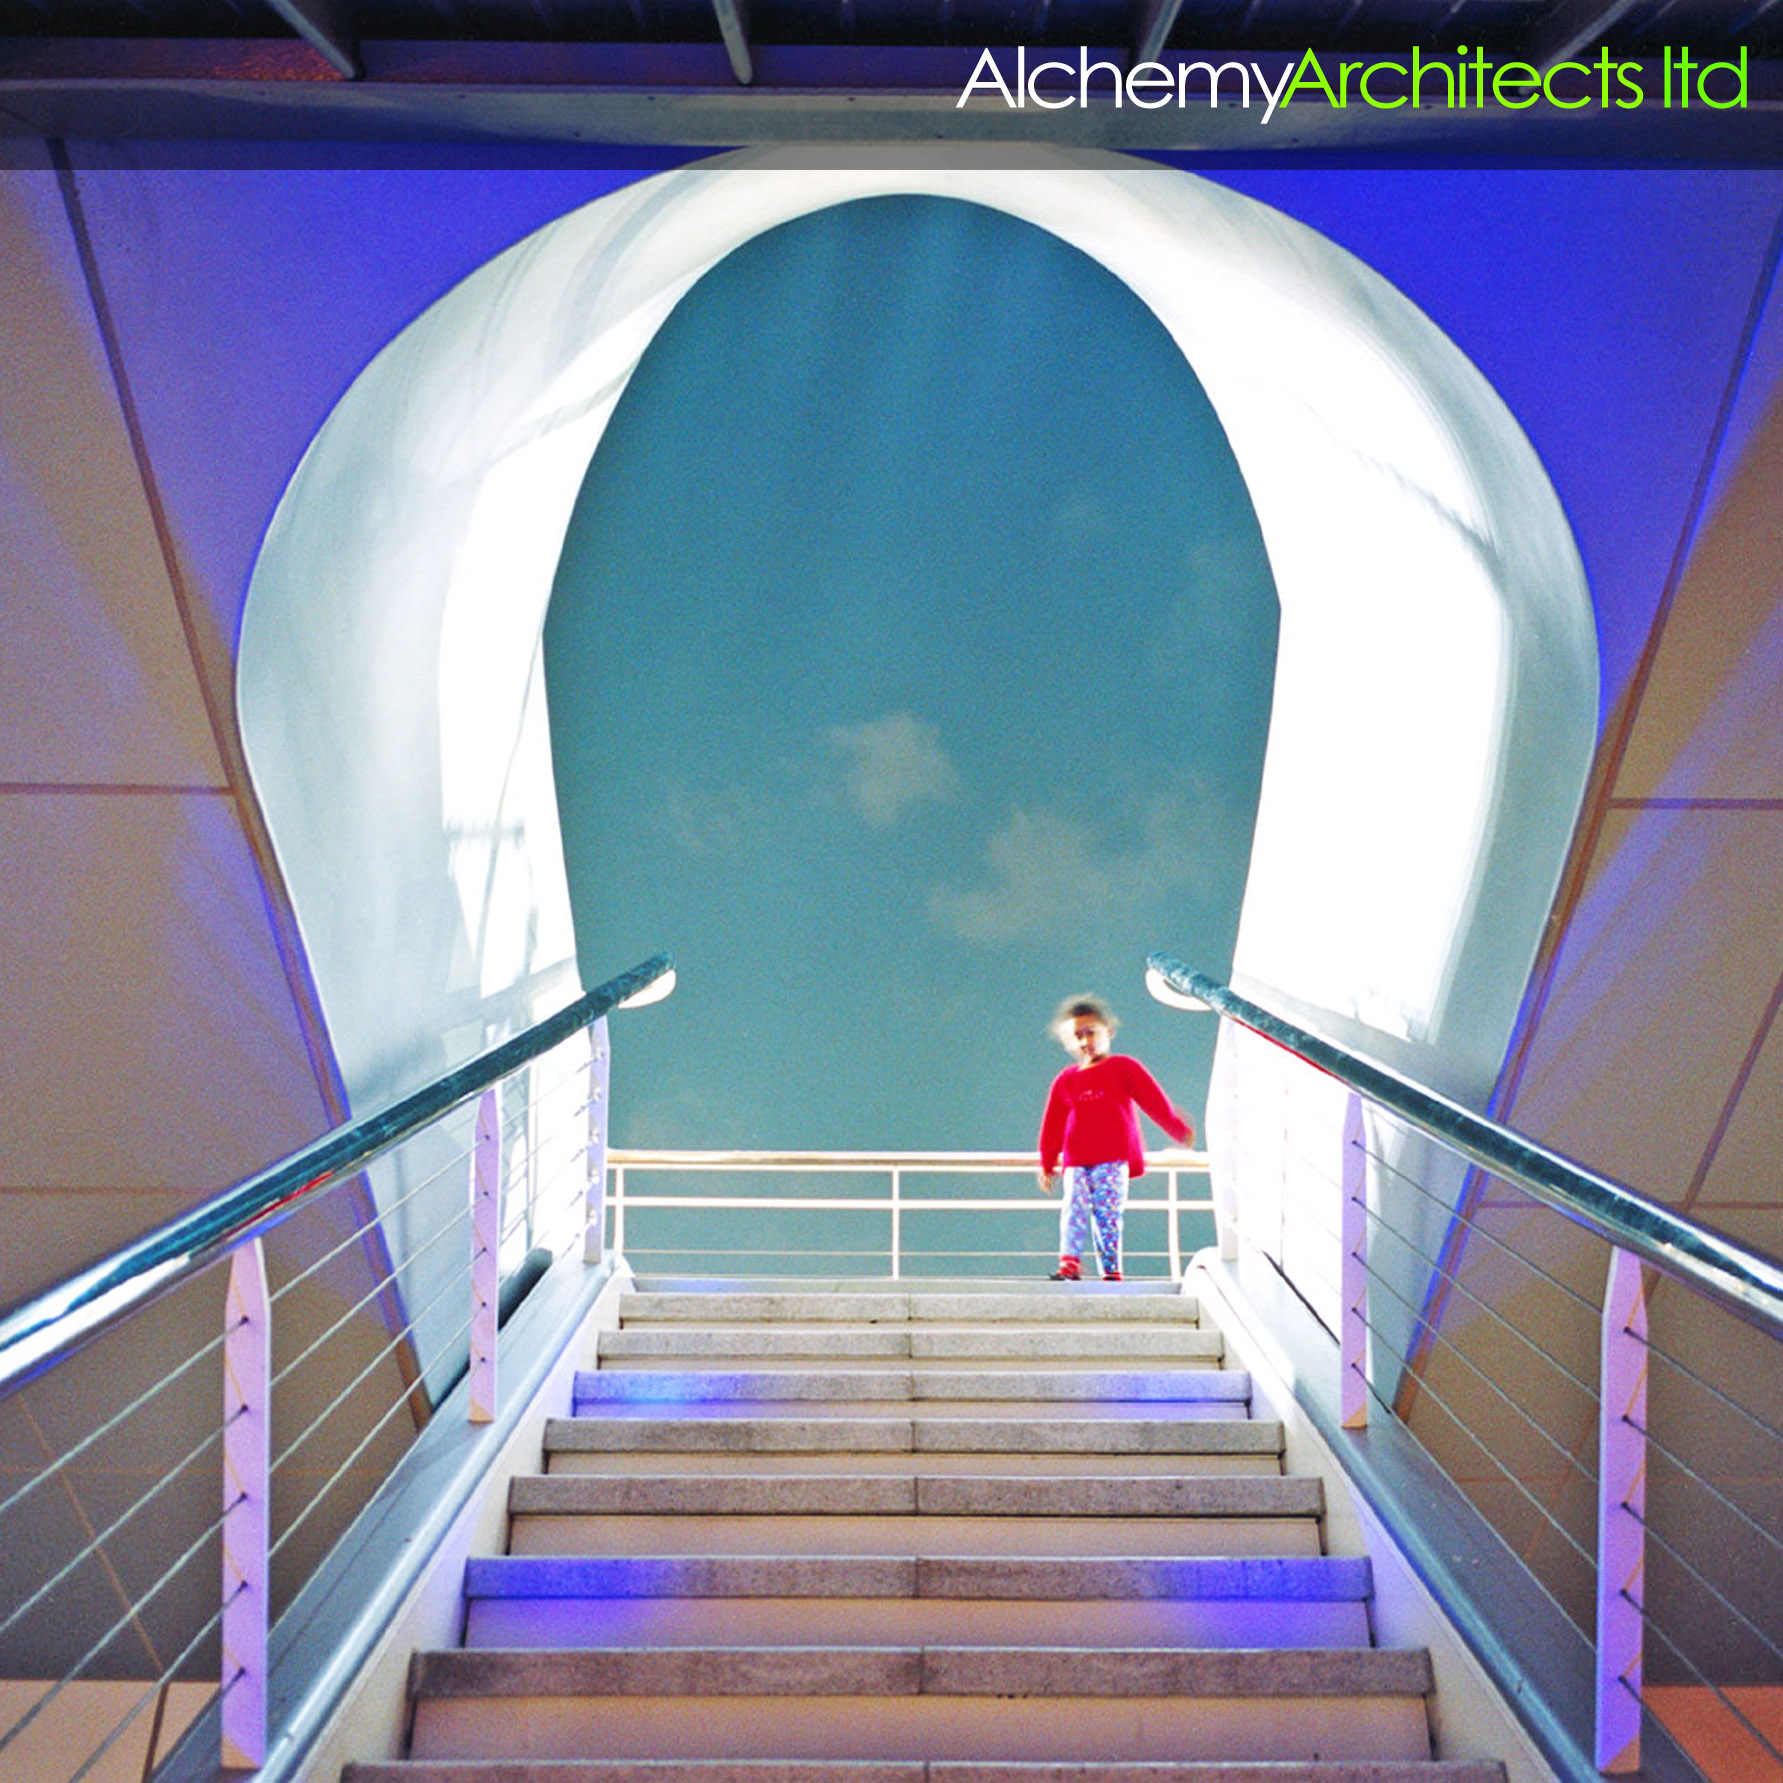 architectural stair and child.jpg